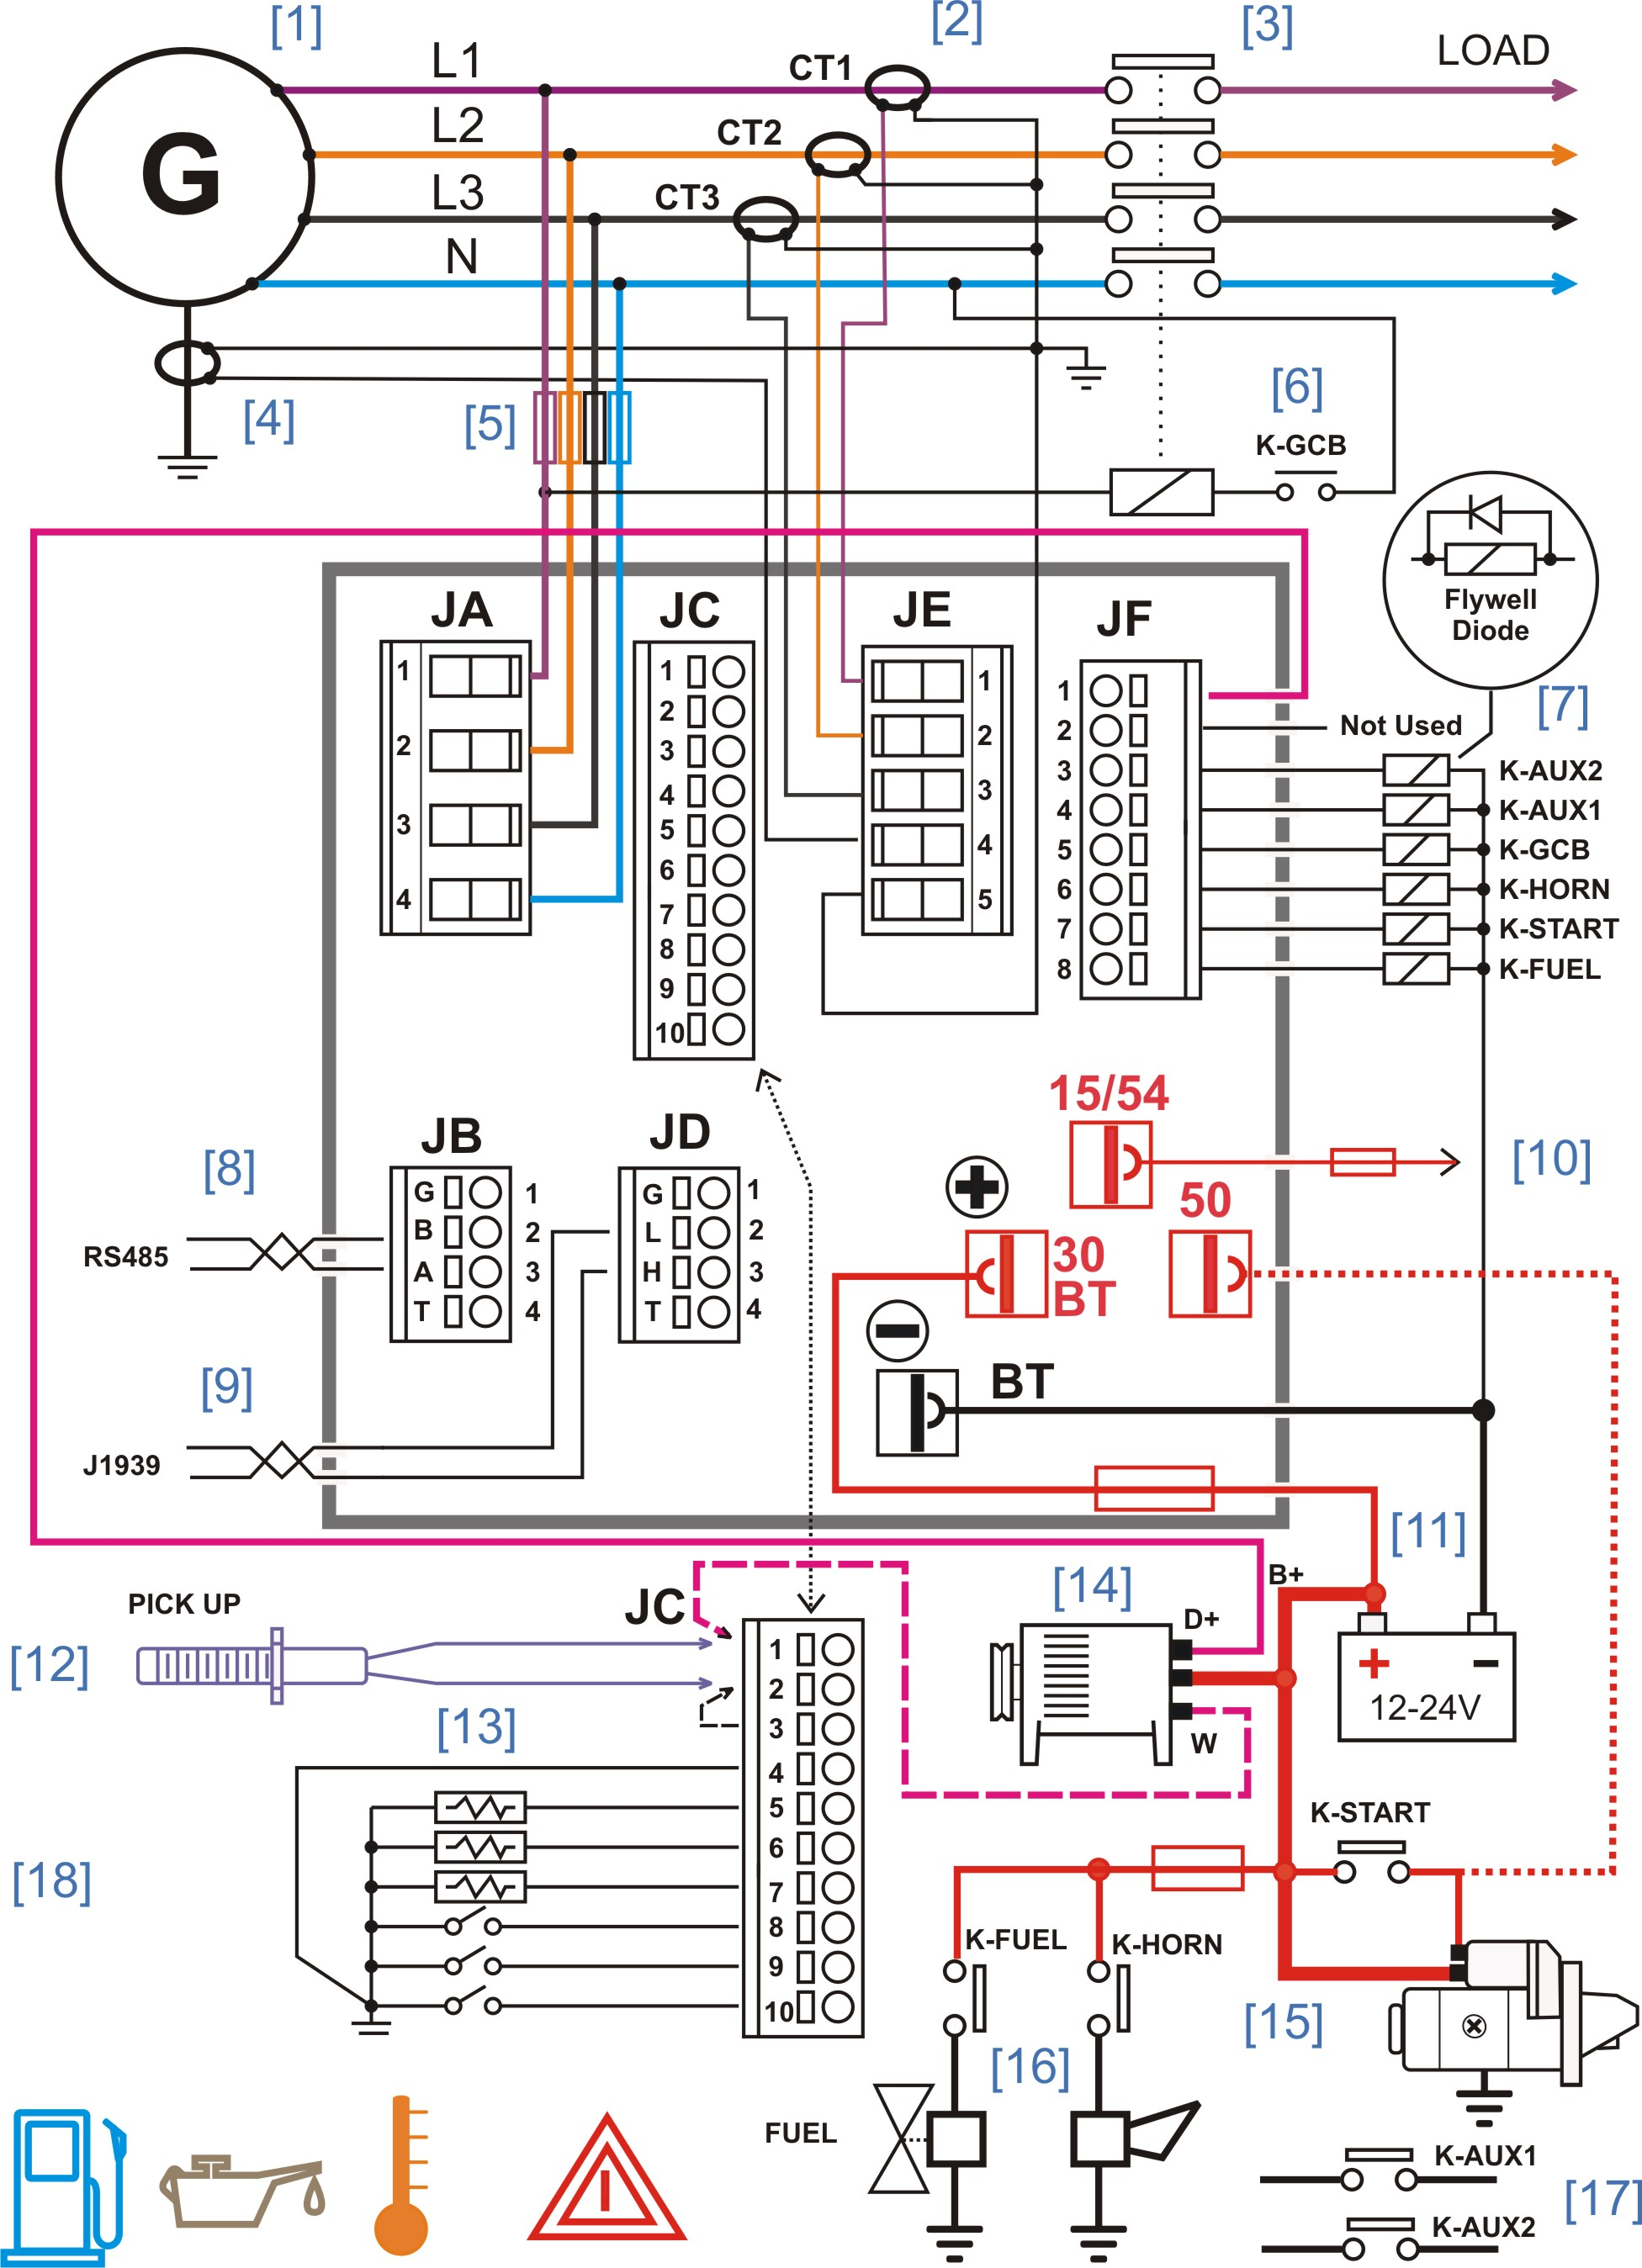 Generator Schematic Wiring Diagram List Of Circuit 1996 48 Volt Club Car Controller Genset Rh Bernini Design Com